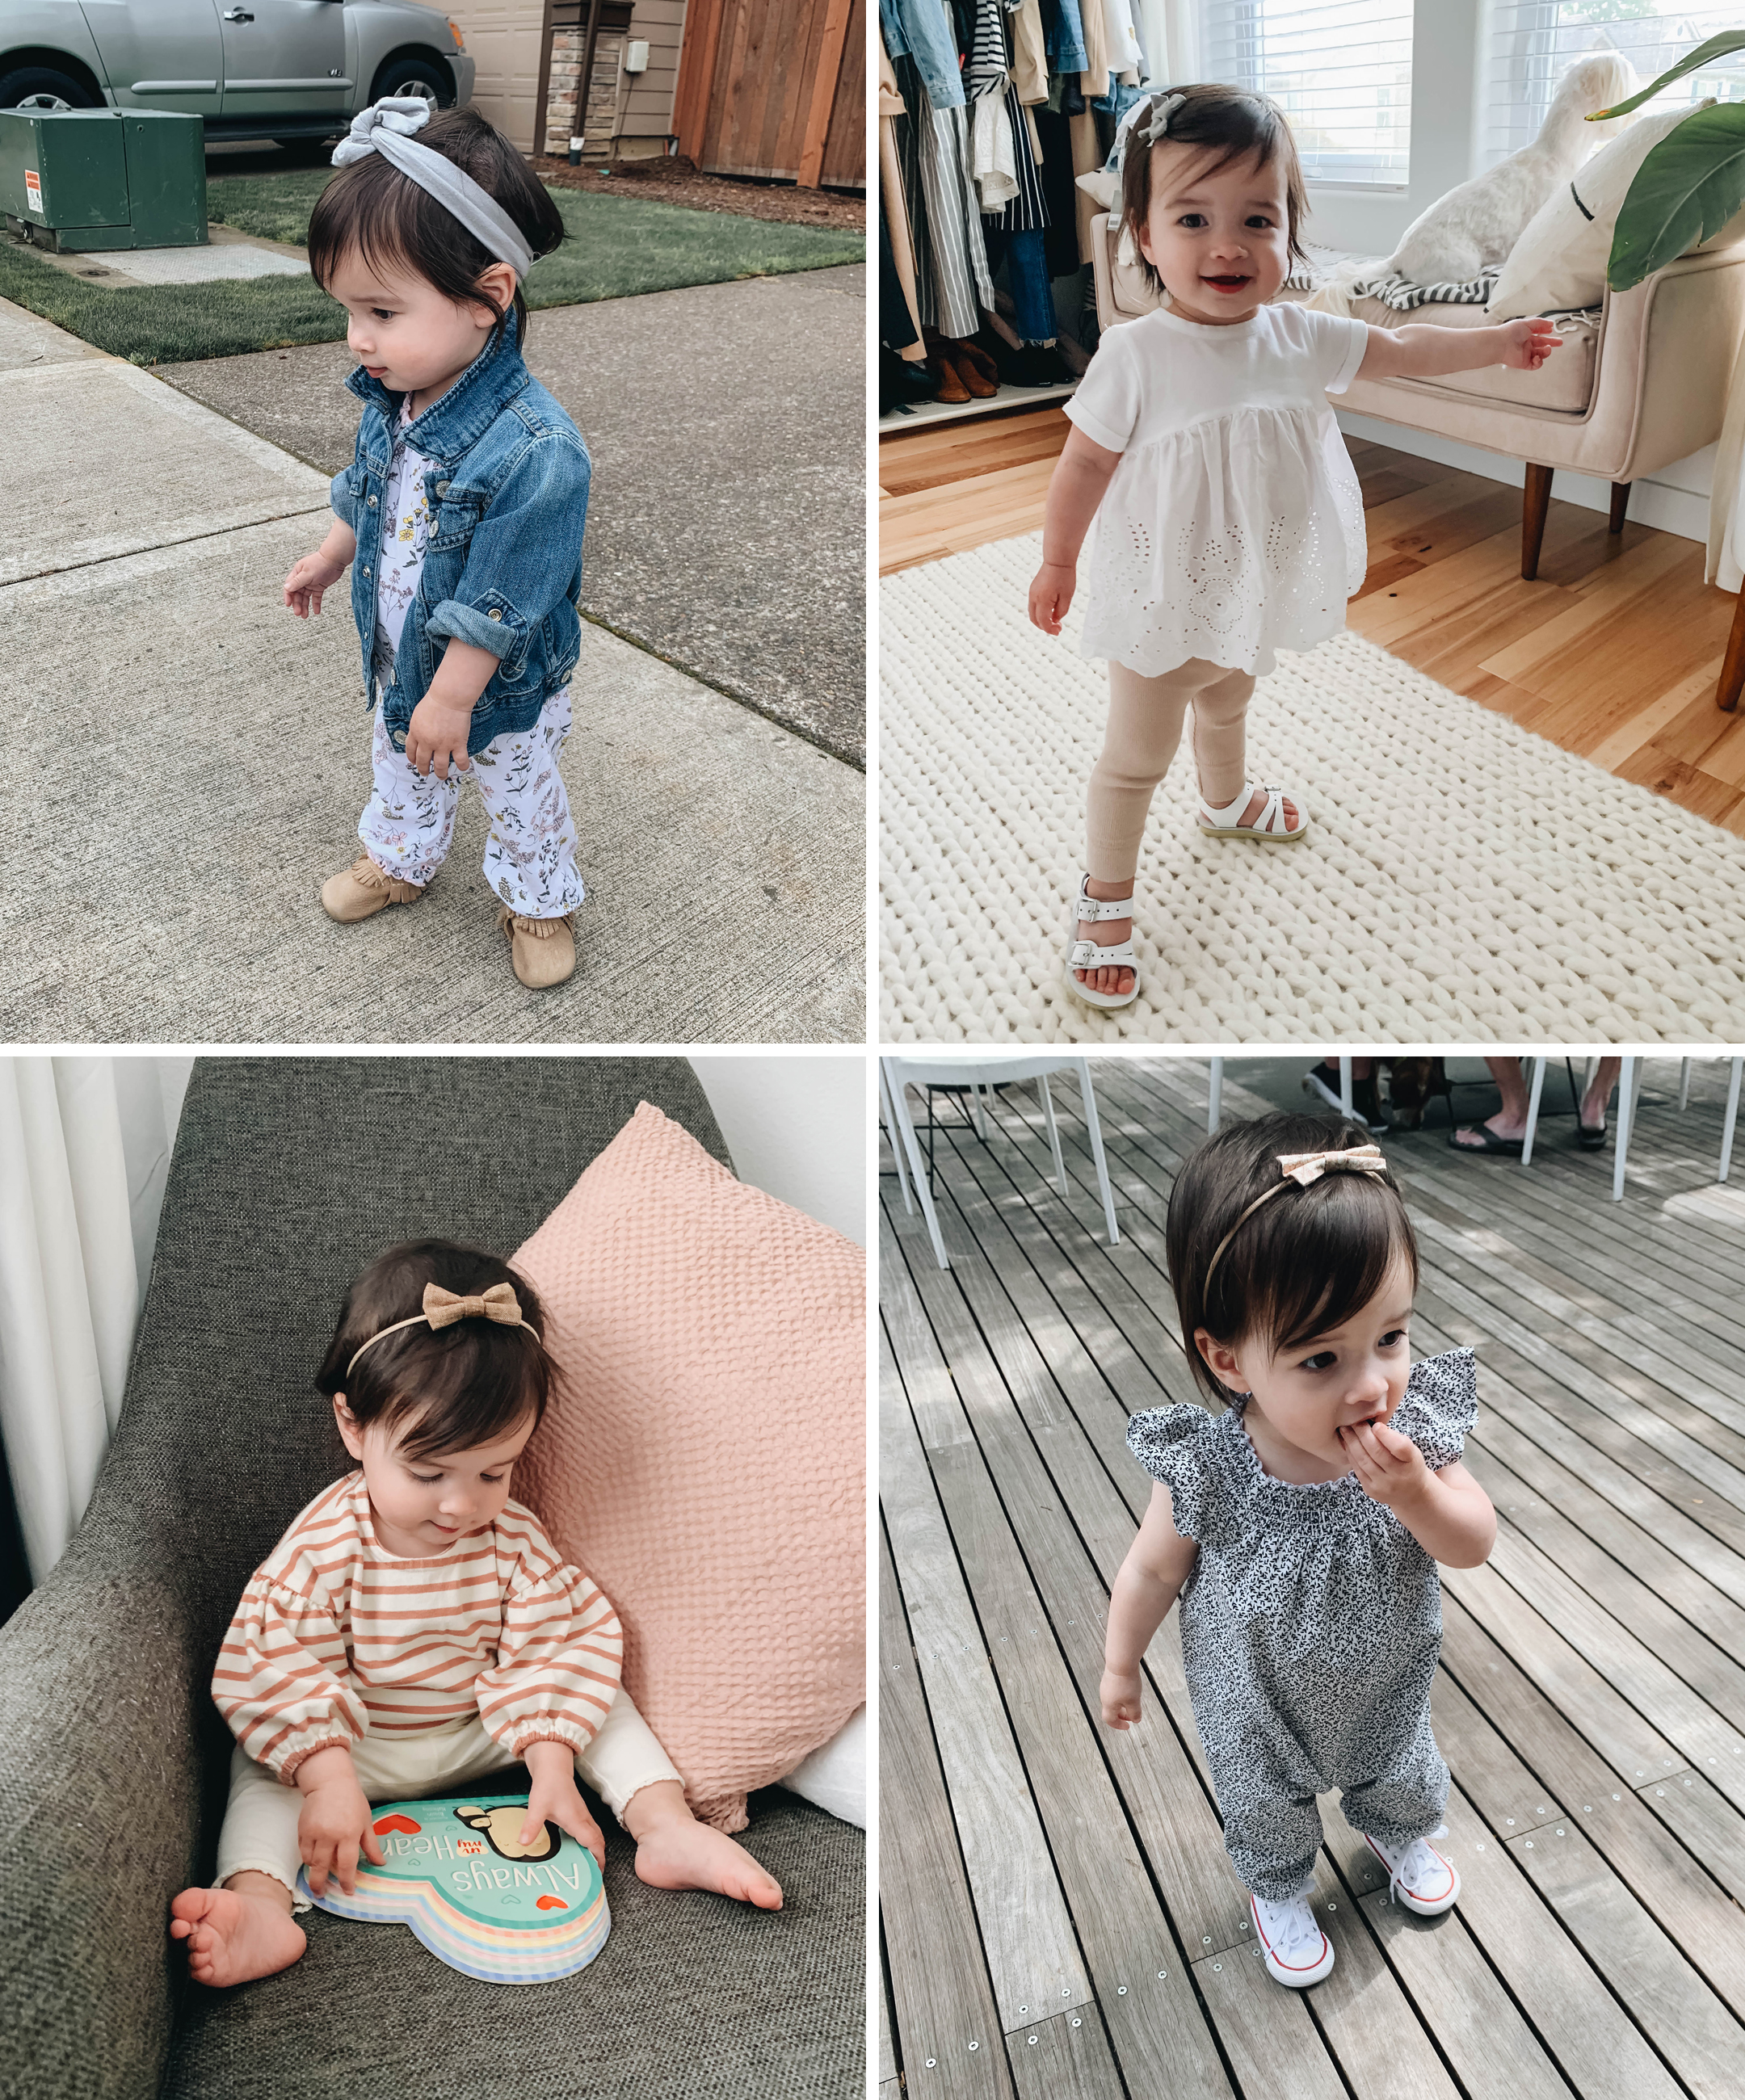 976a6fe9c9c4 Harper's Recent Outfits - Crystalin Marie